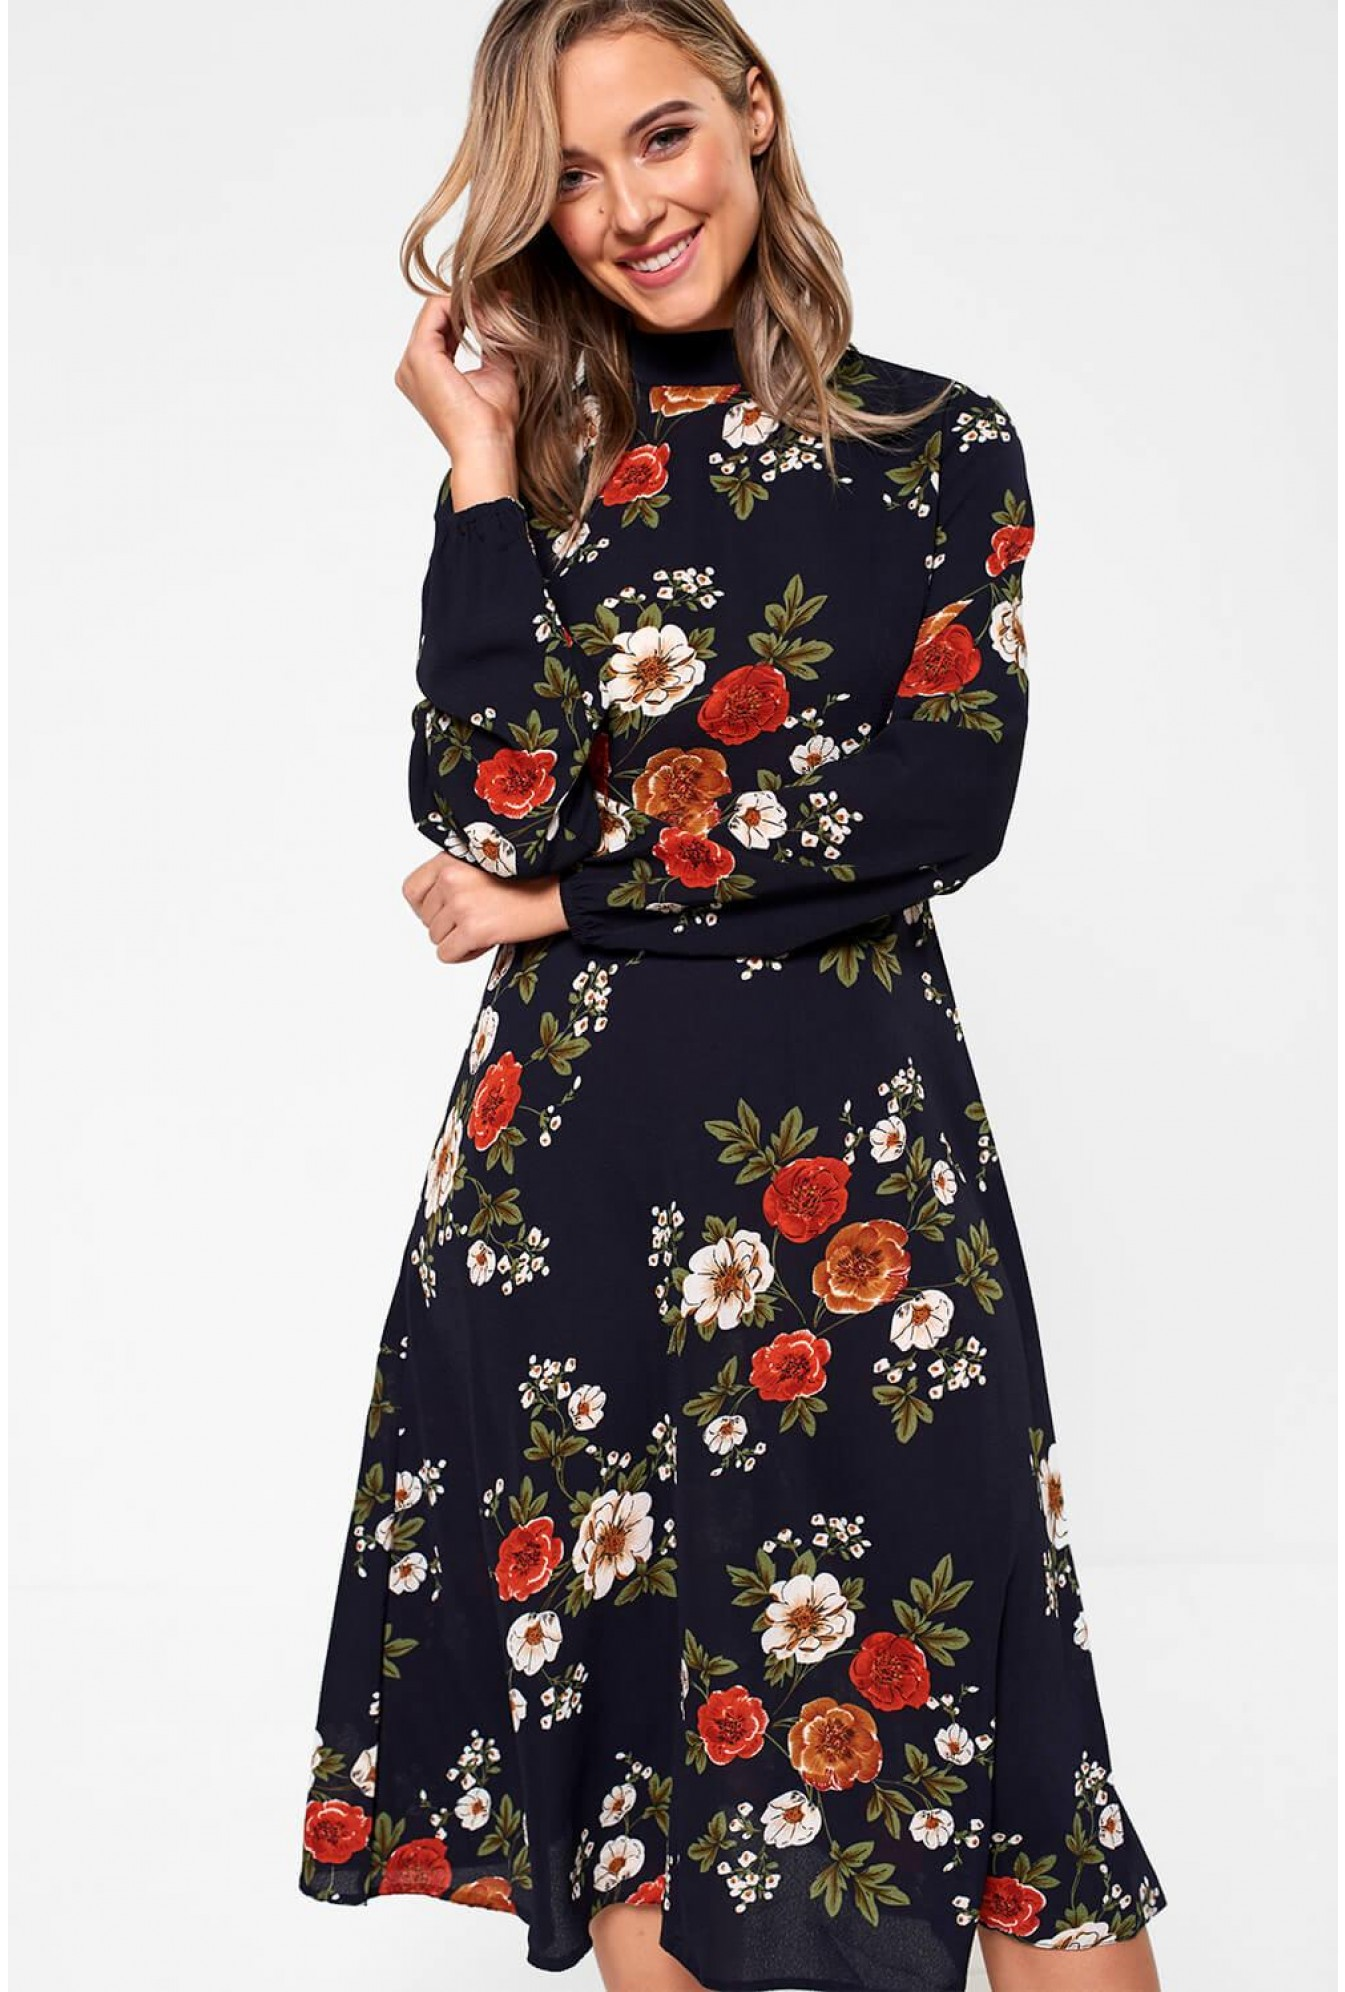 427dfe00b19d More Views. Lydia Long Sleeve Floral Midi Dress in Navy